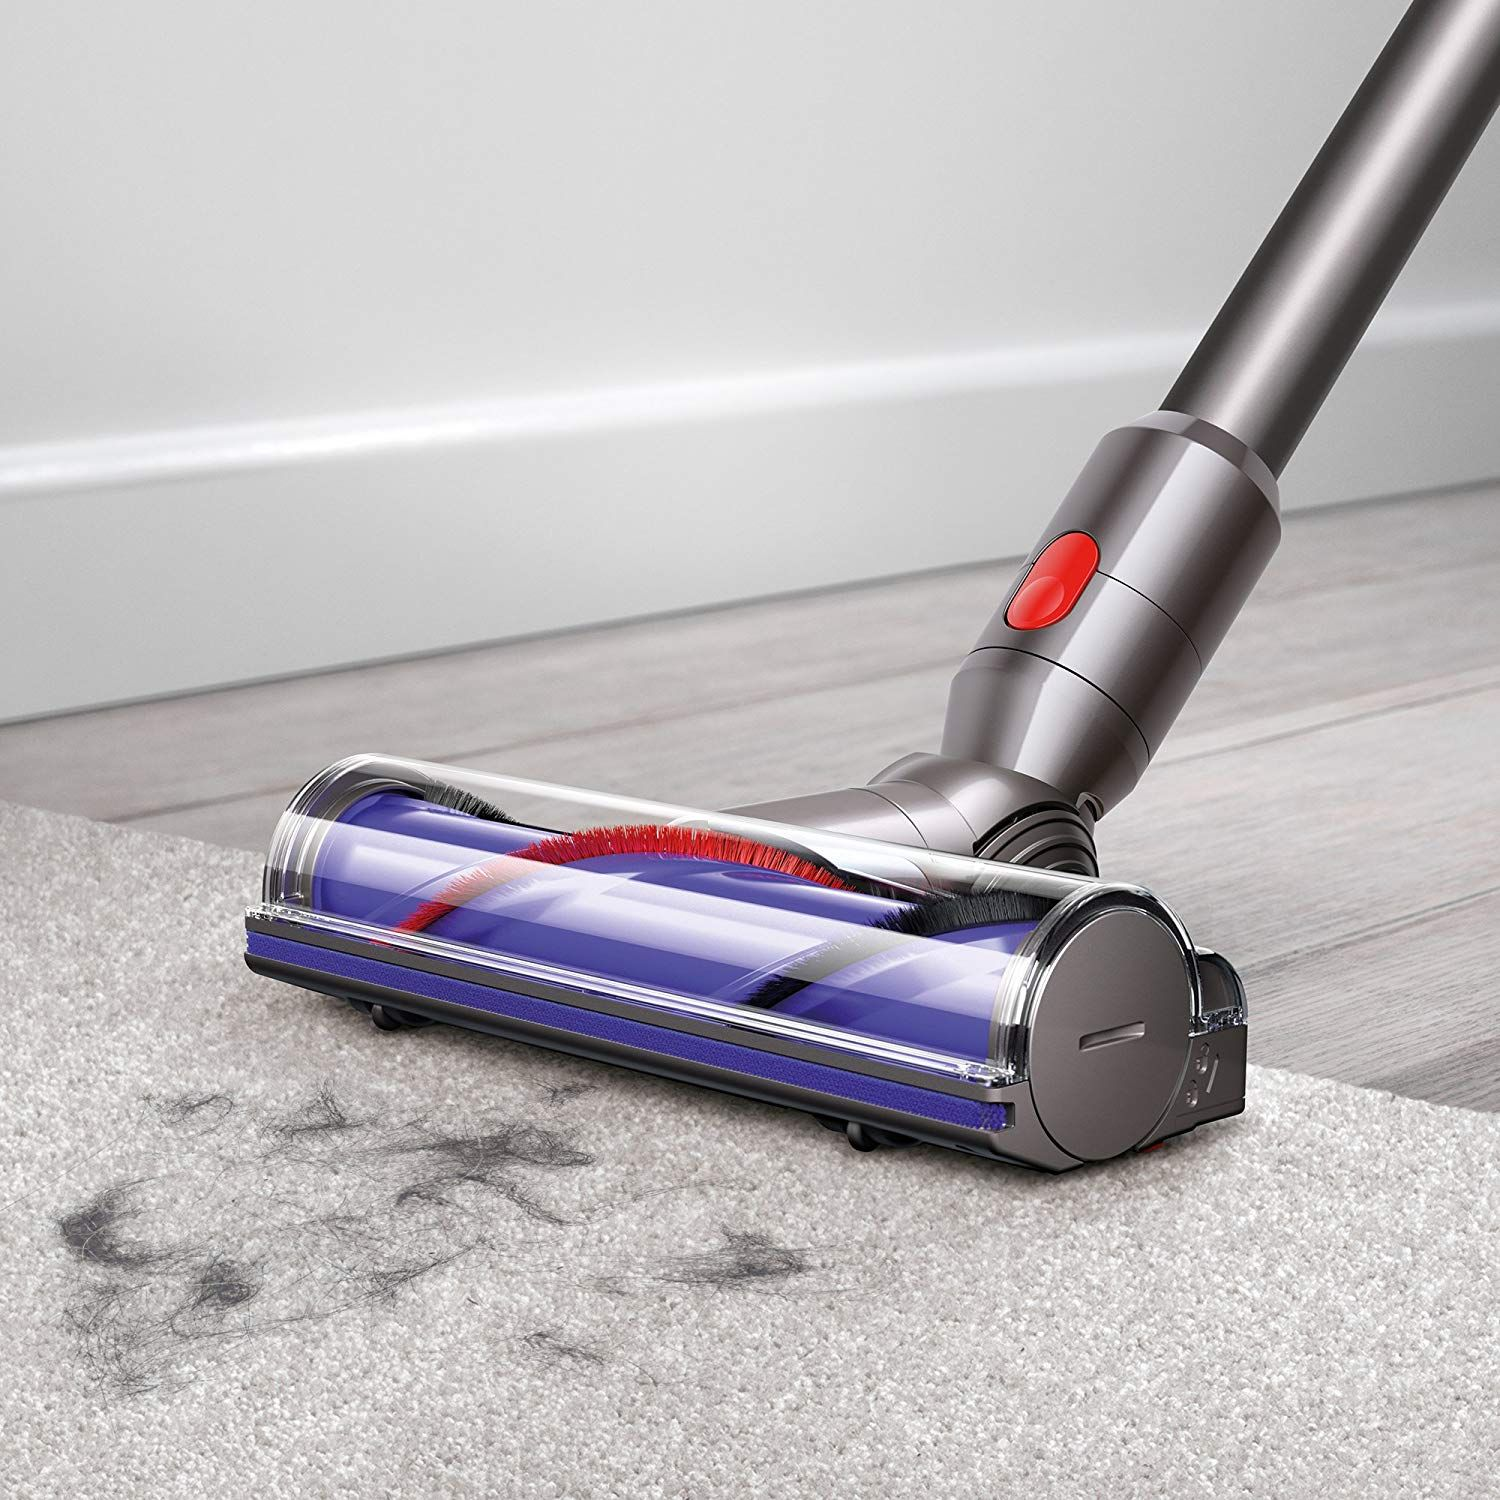 This Dyson Vacuum Cleaner Made Me Love Cleaning, and It's on Sale Right Now